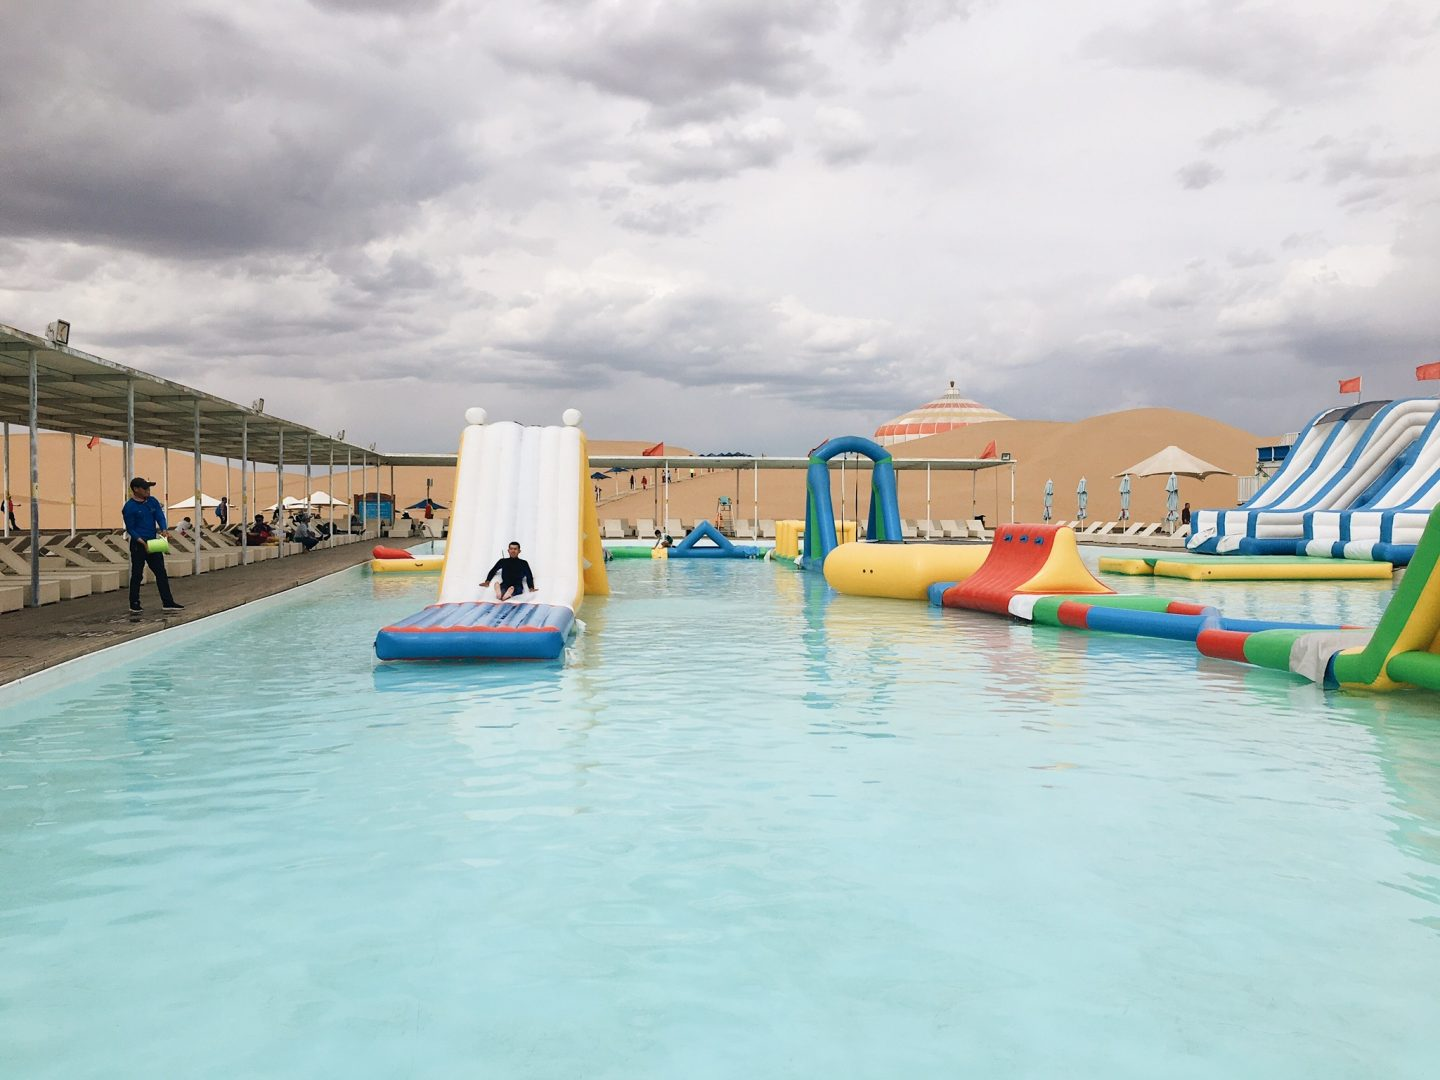 Water park in the desert in Inner Mongolia, China!